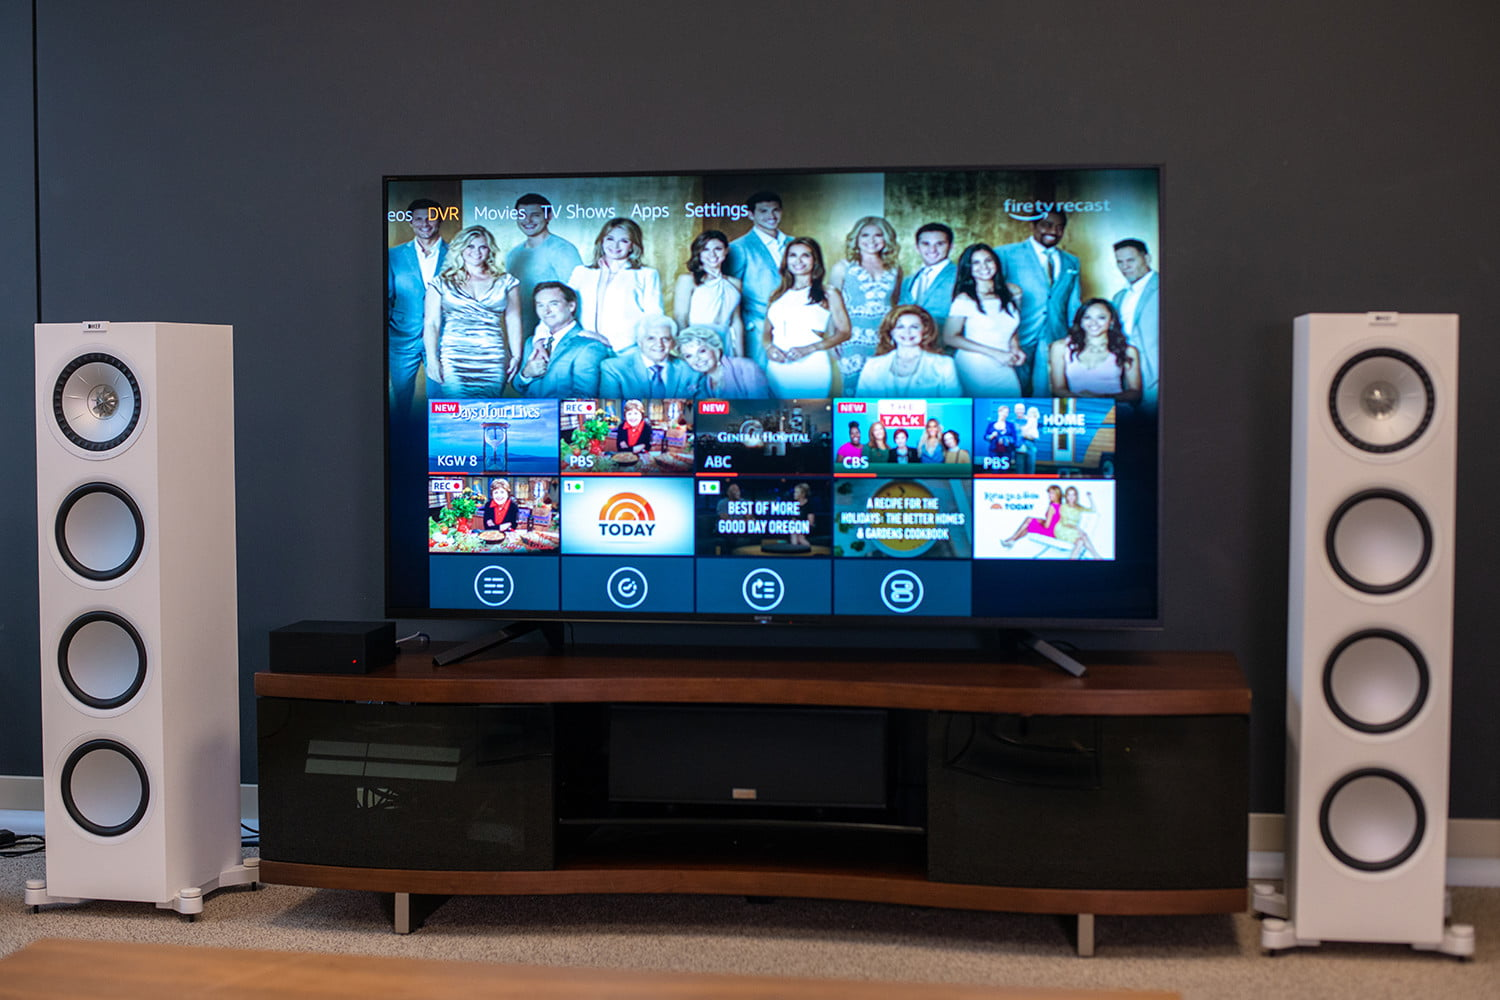 Amazon's Slick Fire TV Recast is a Great Way to Record